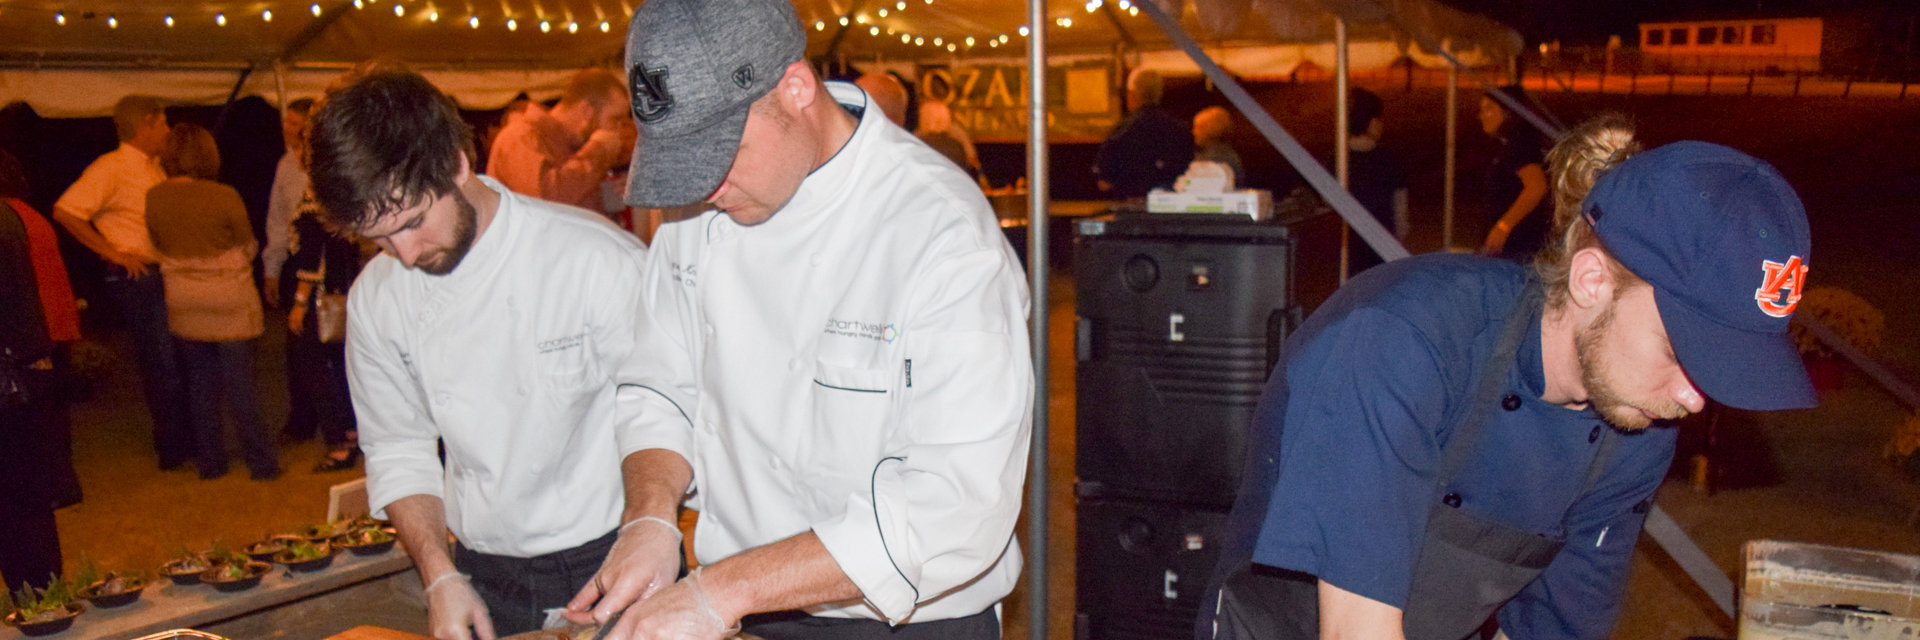 Three chefs, one wearing an Auburn cap, cooking at the Birds n Brews College of Agriculture event